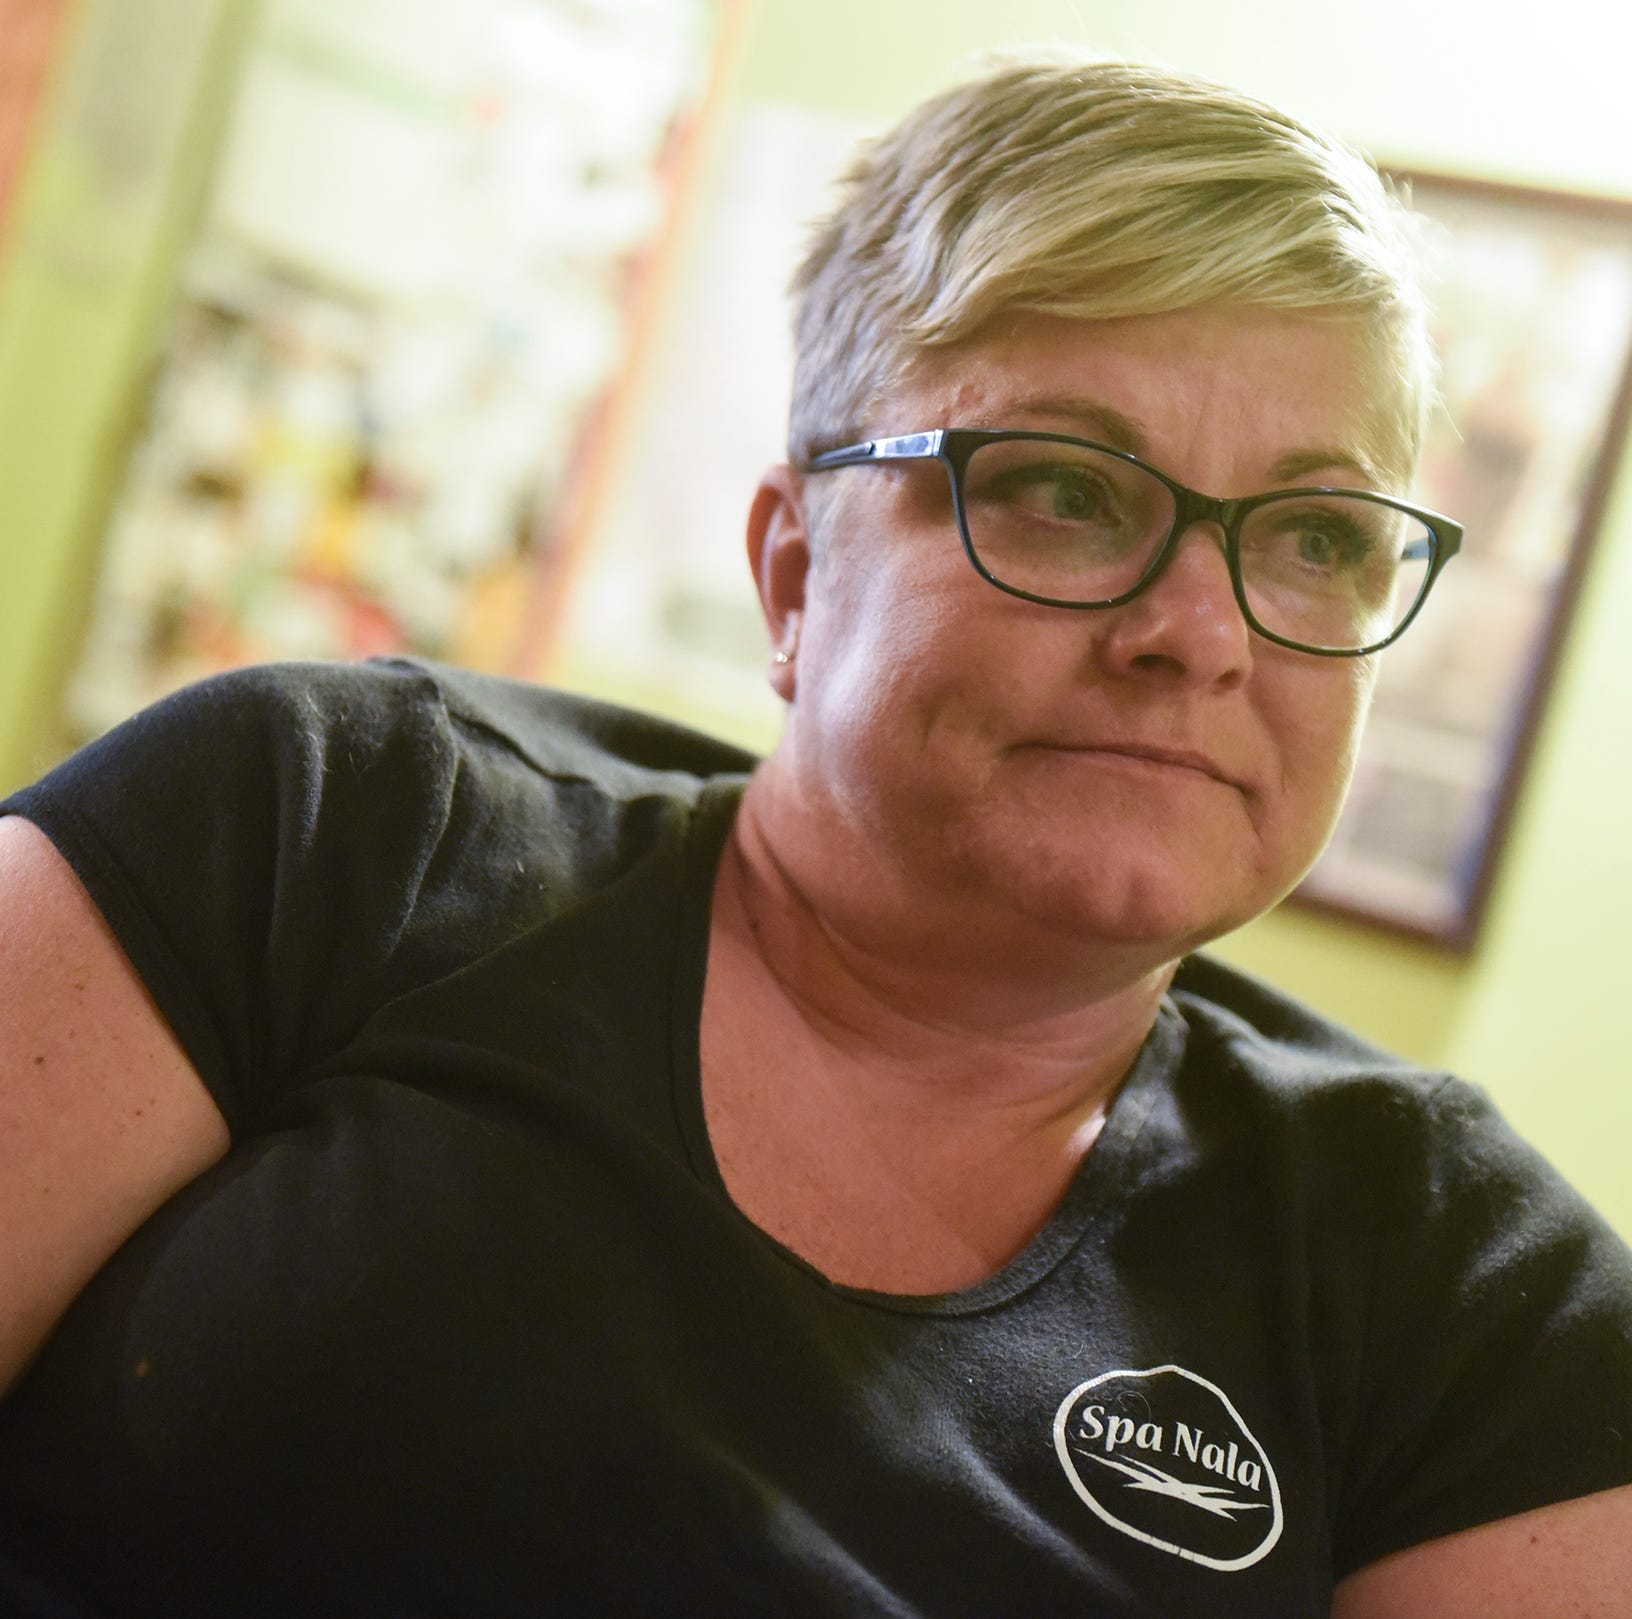 What the life of a local business taught its owner about grief, healing and moving on